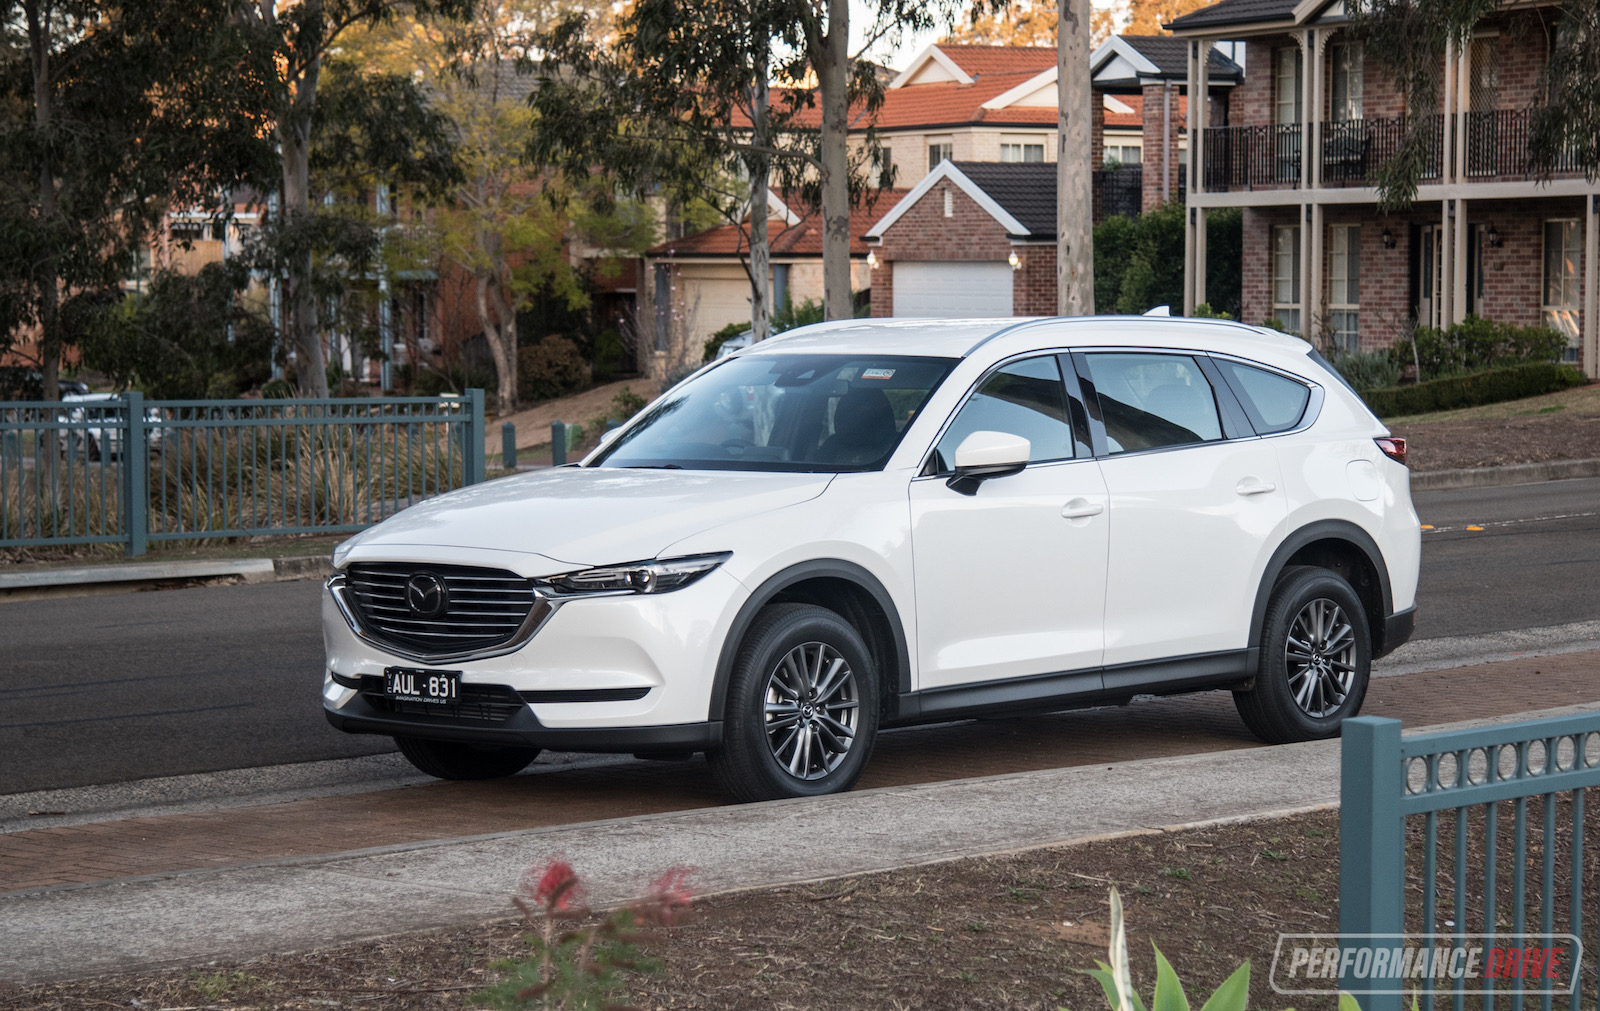 2018 Mazda CX-8: Styling, Specs, Availability >> 2018 Mazda Cx 8 Review Video Performancedrive